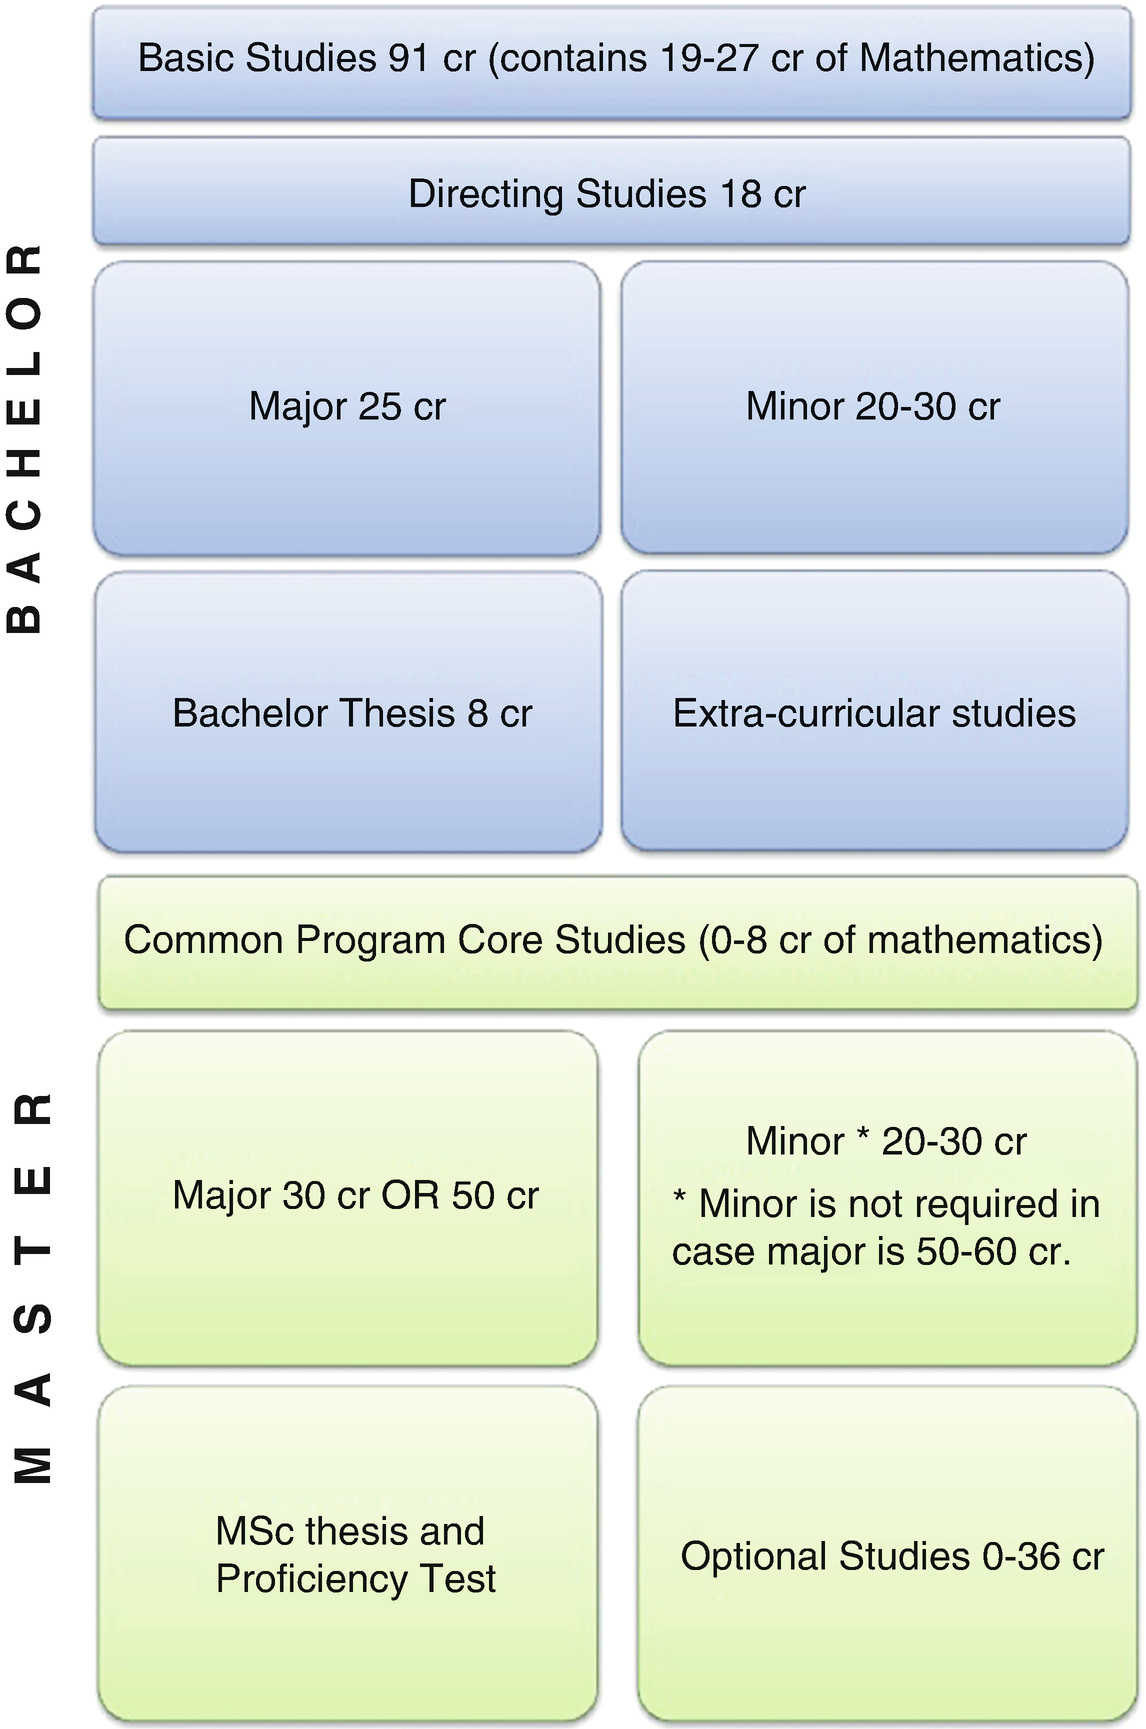 Overview of Engineering Mathematics Education for STEM in EU